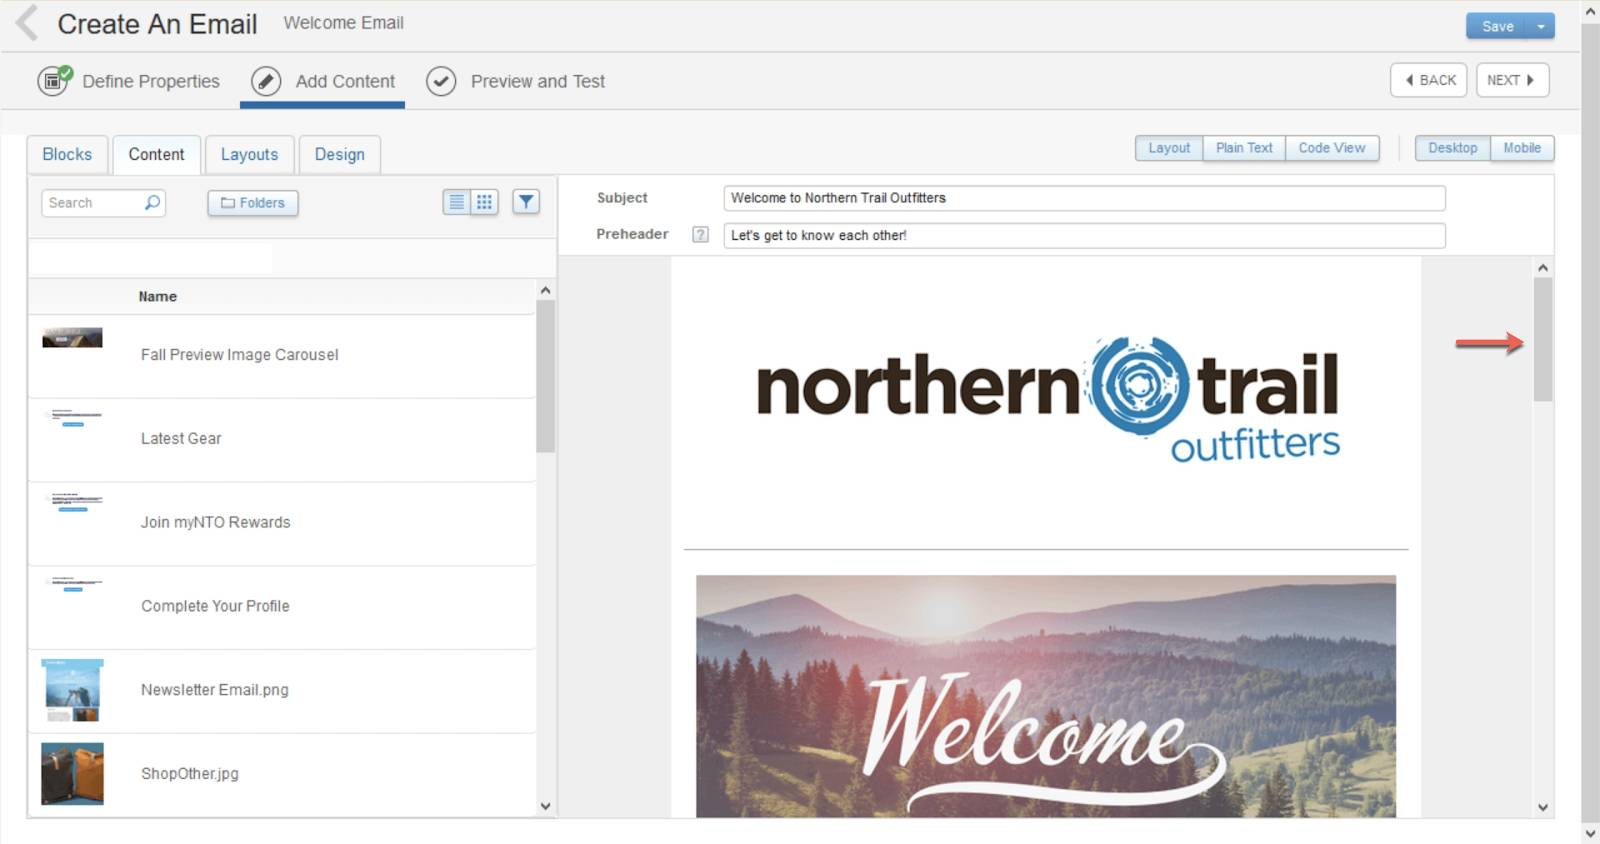 A screenshot showing a red arrow pointing to the scroll bar closest to the Northern Trail Outfitters logo. This helps, as there are two scroll bars visible on screen.